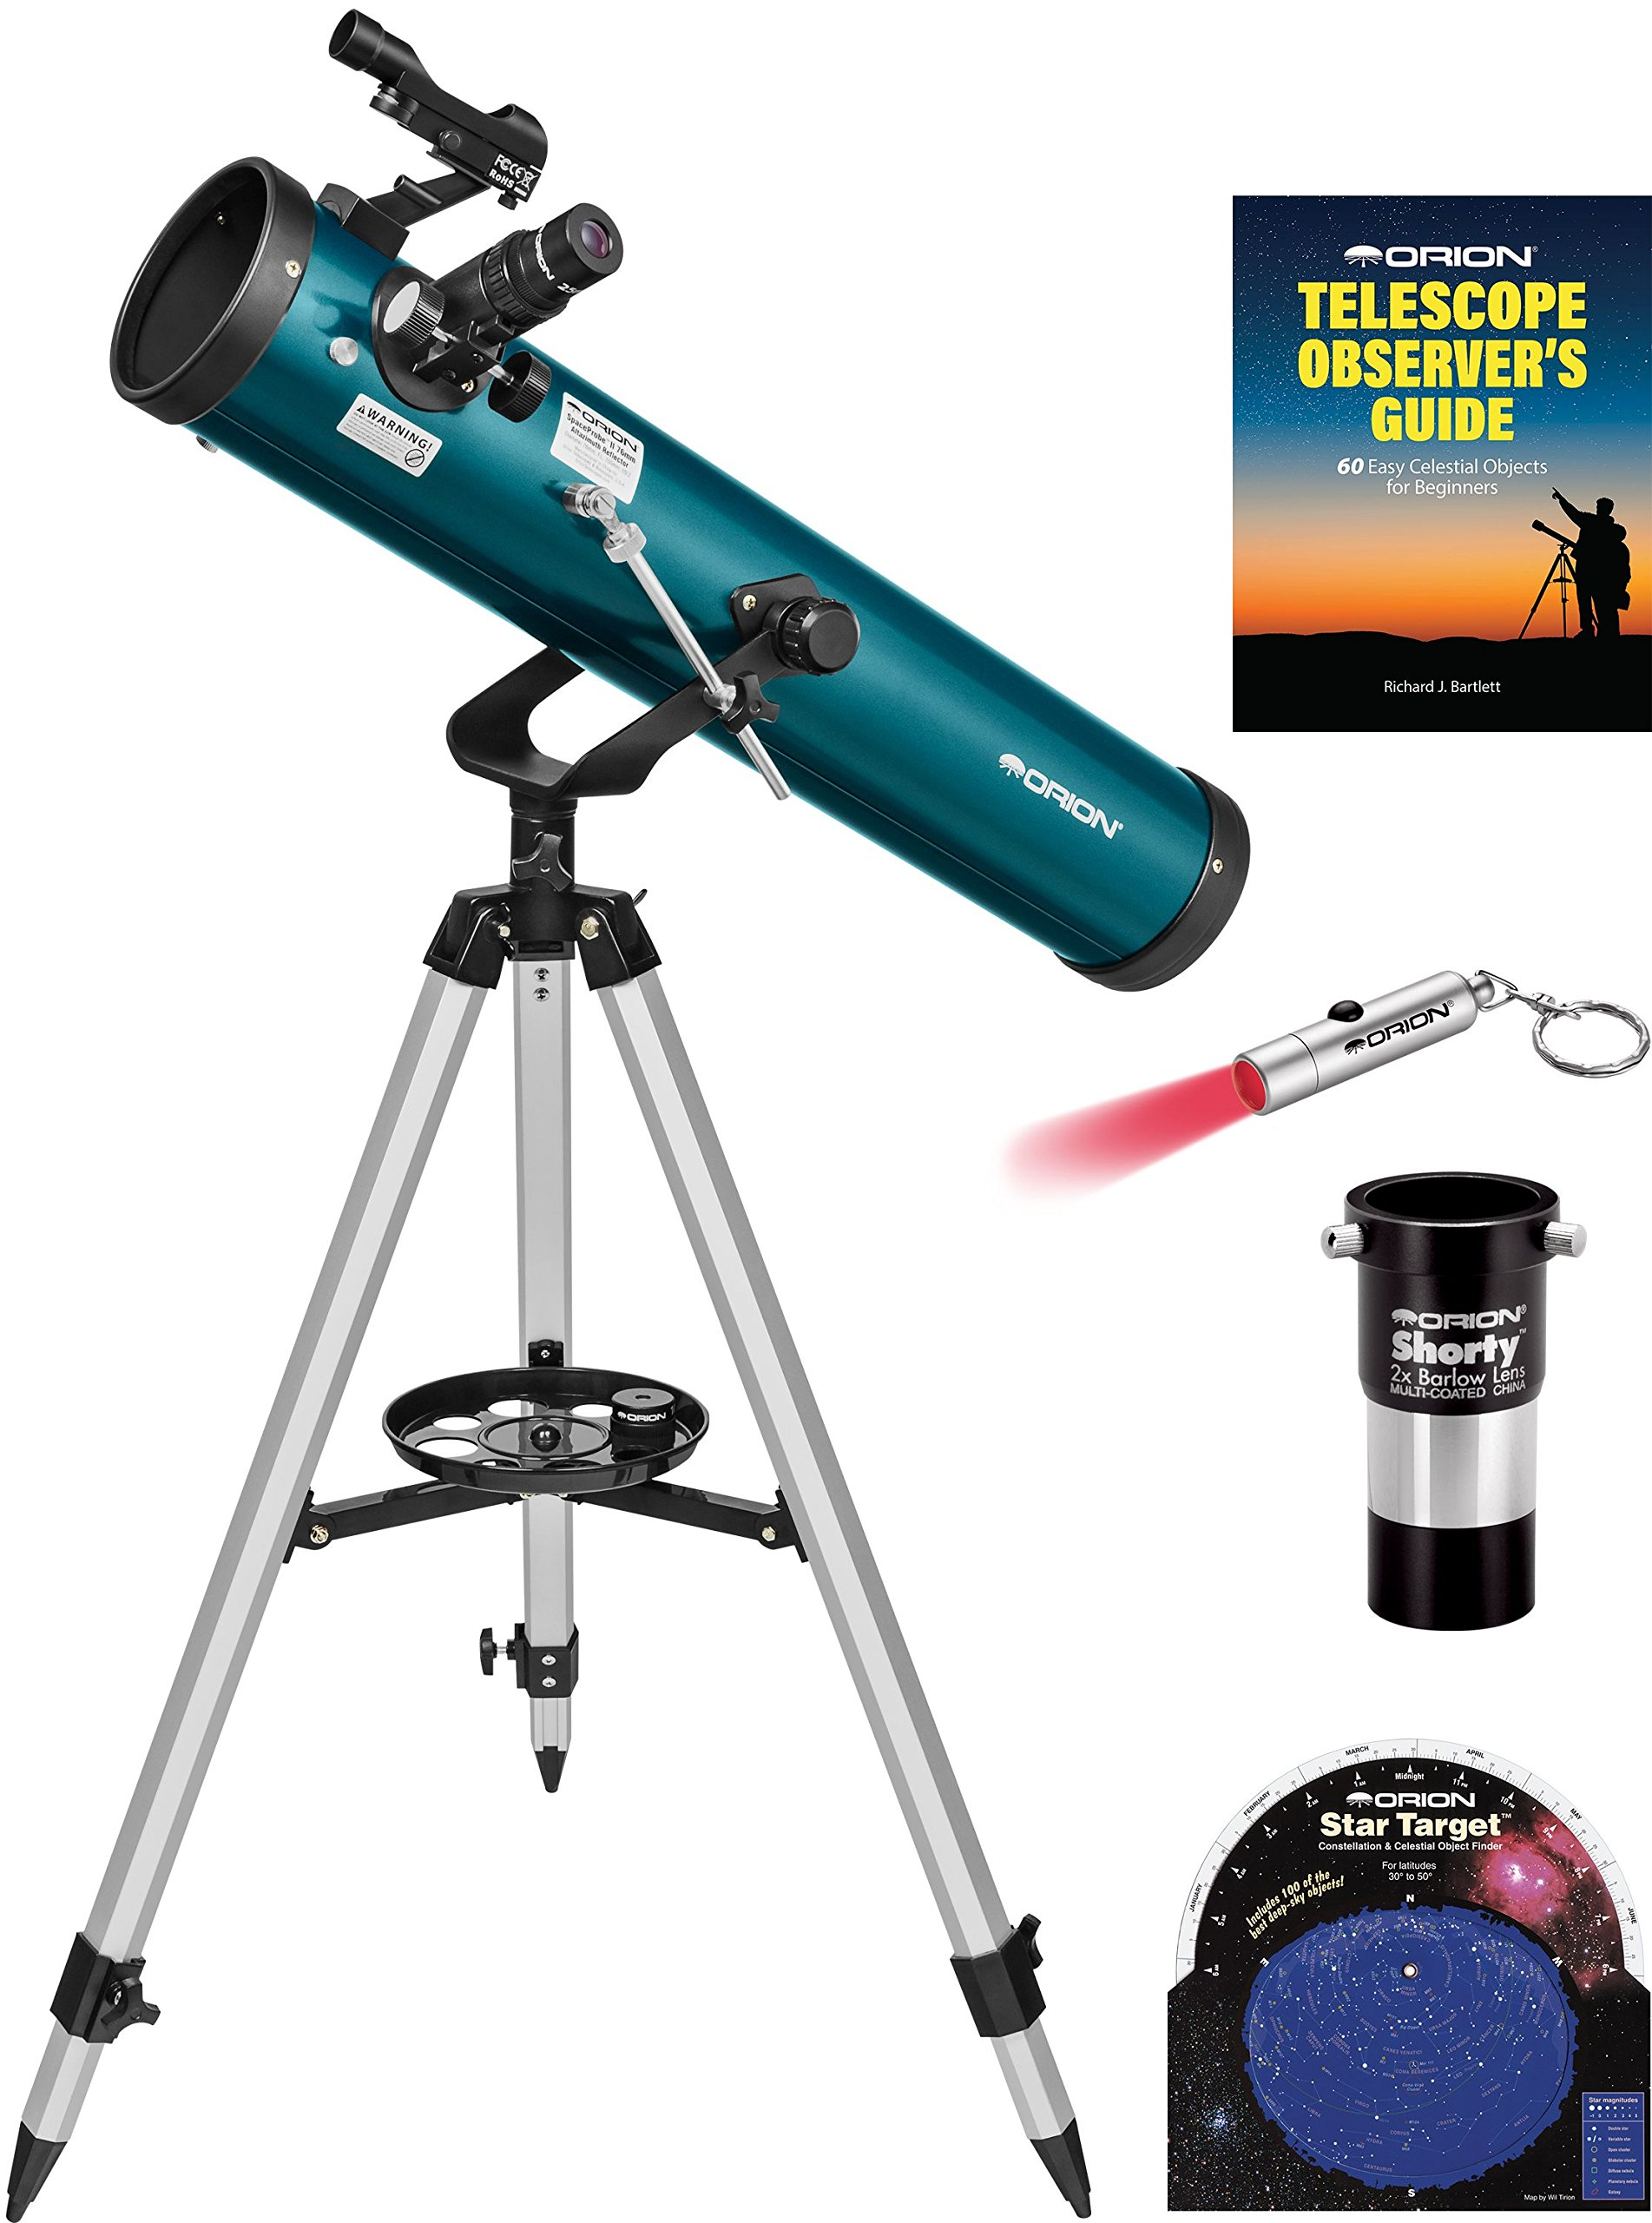 Orion SpaceProbe II 76mm Altazimuth Reflector Telescope Kit by Orion